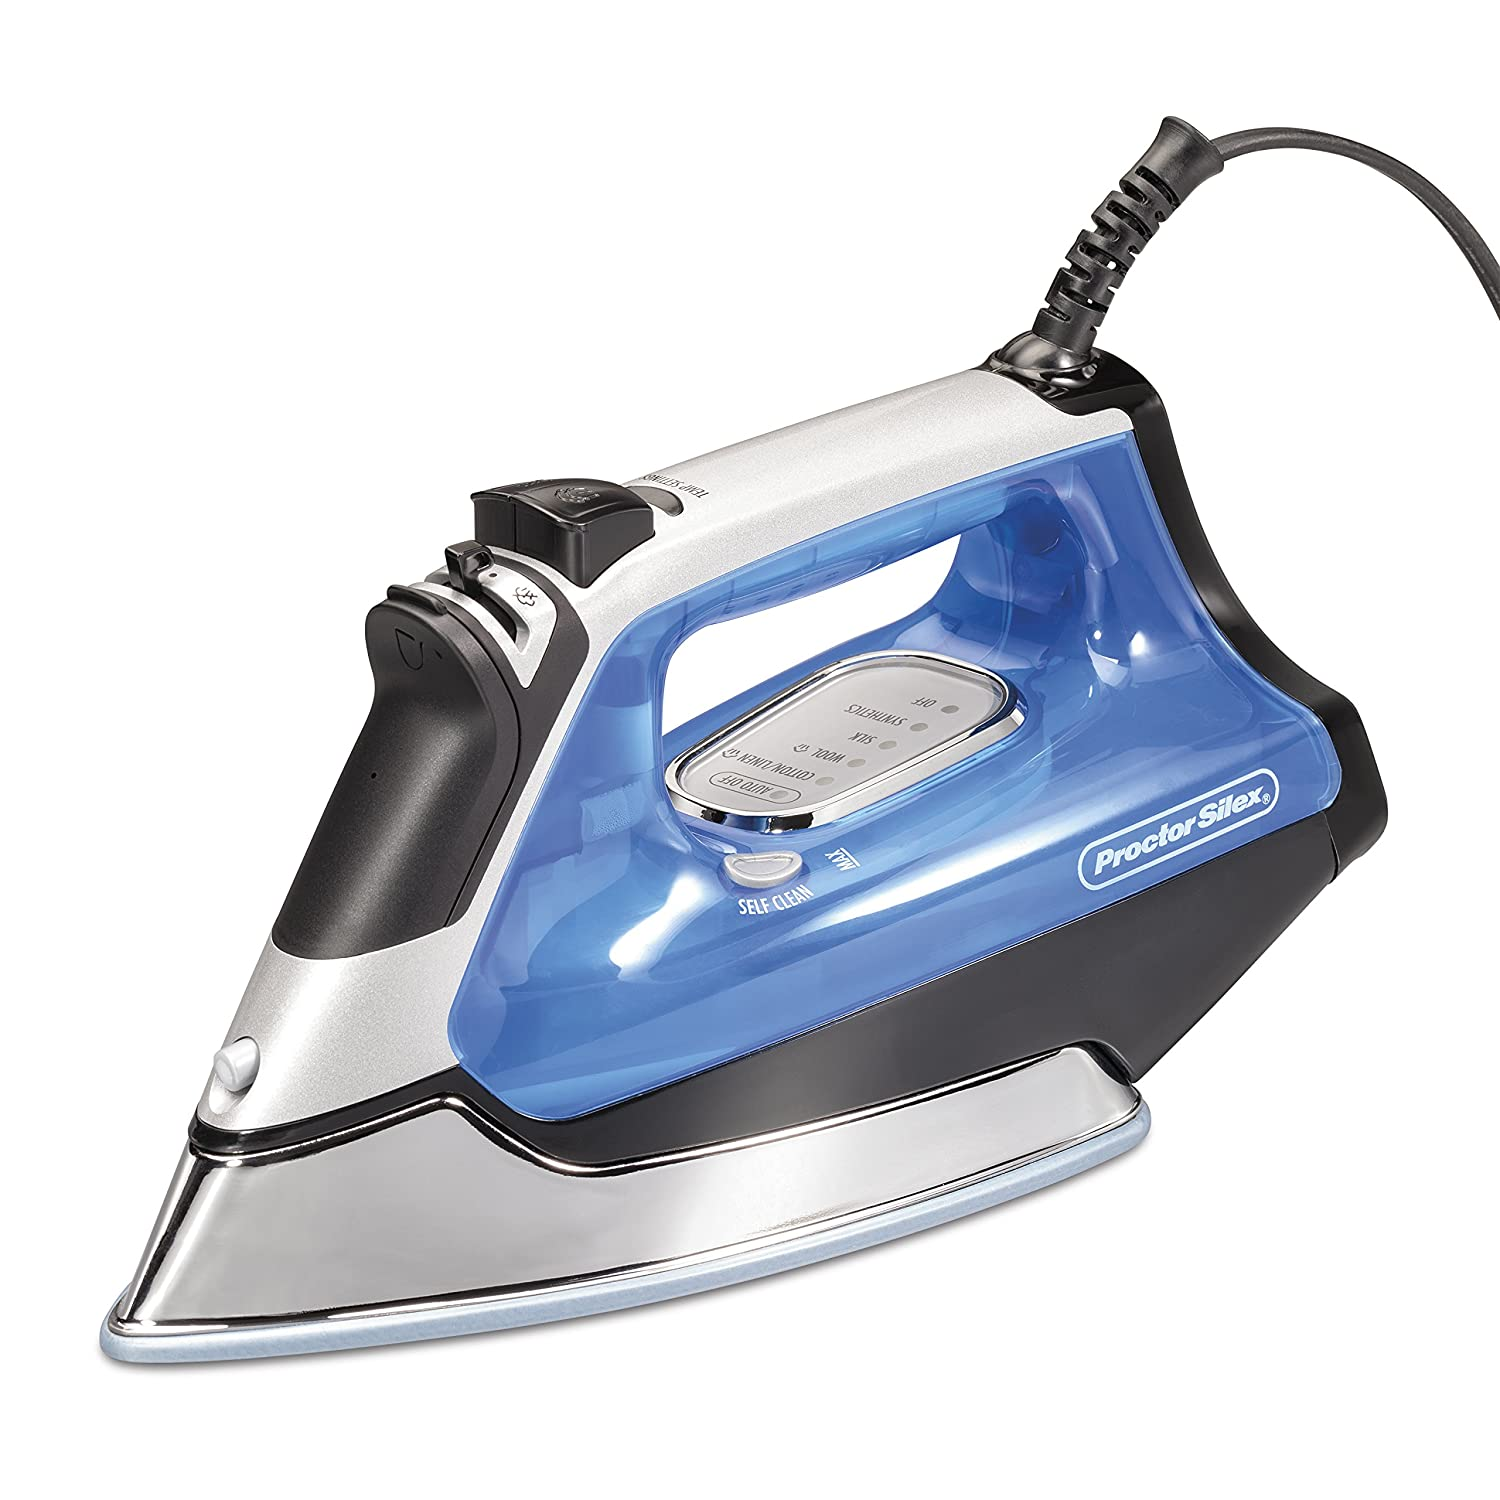 Proctor Silex Electronic Ceramic Nonstick Soleplate Steam Iron Blue